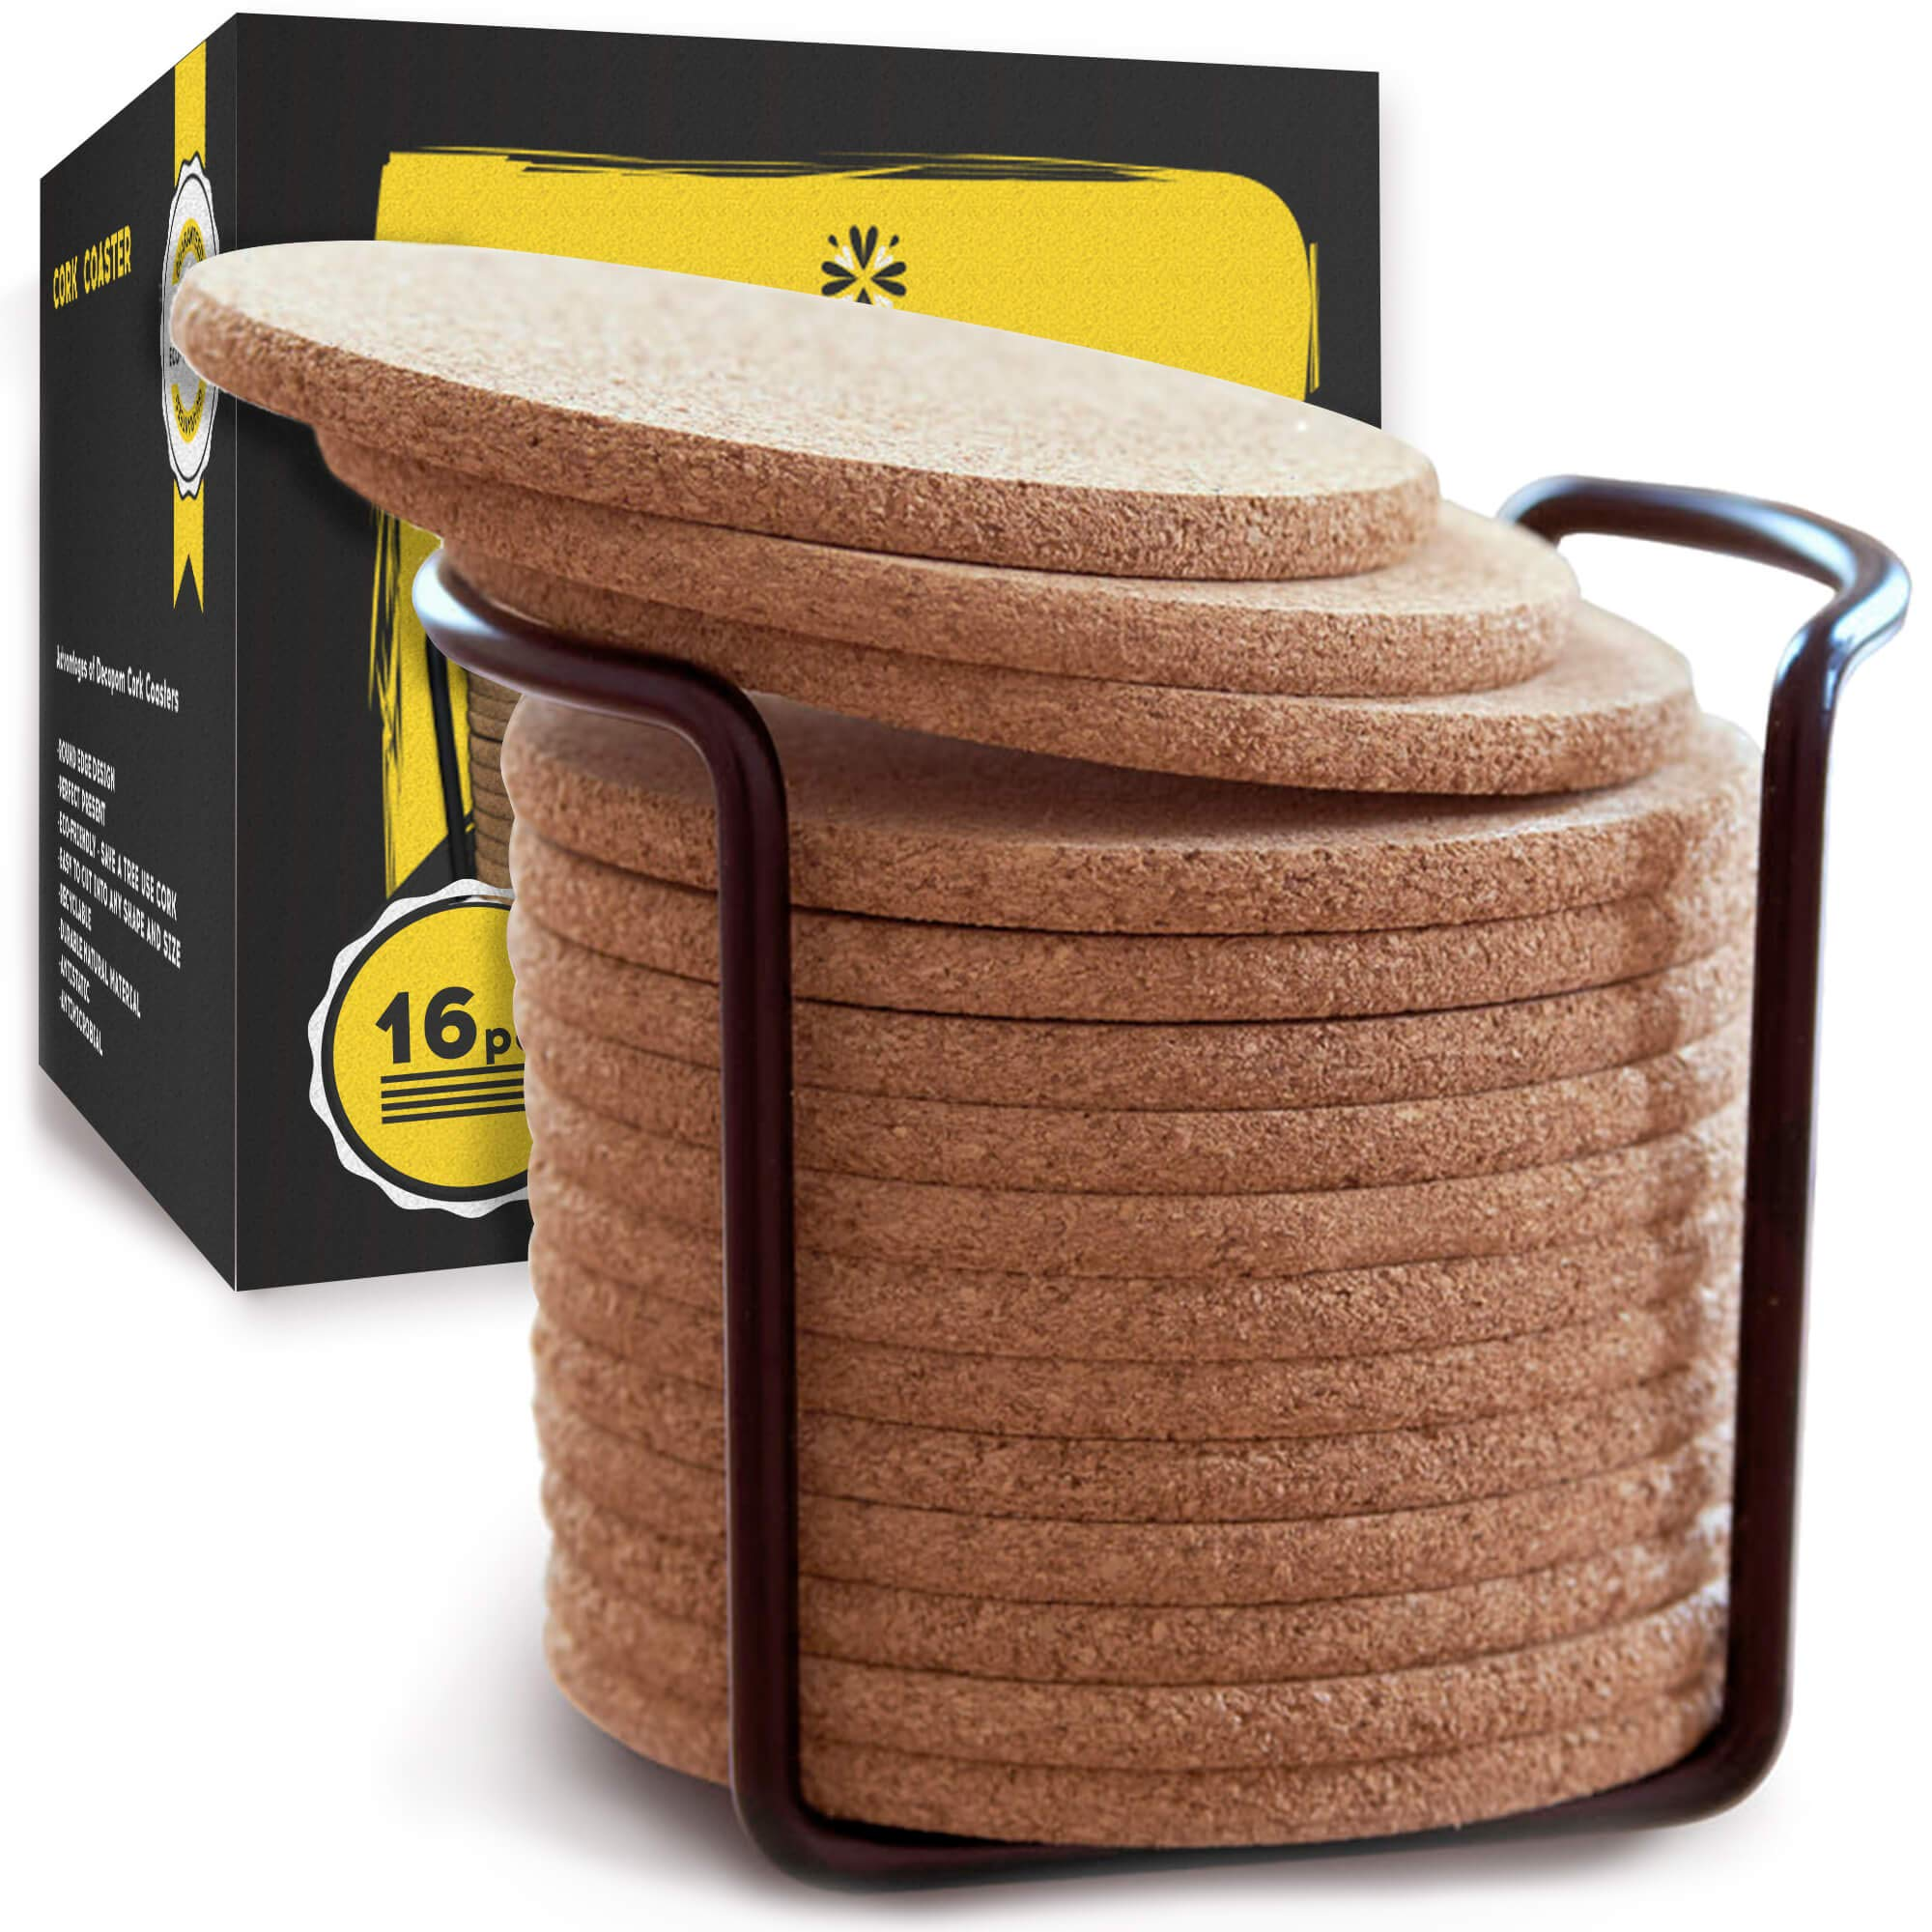 Natural Cork Coasters with Round Edge 4 inches 16pc Set with Metal Holder Storage Caddy - 1/5'' Thick Plain Absorbent Heat-Resistant Reusable Saucers for Cold Drinks Wine Glasses Plants Cups & Mugs by Decopom